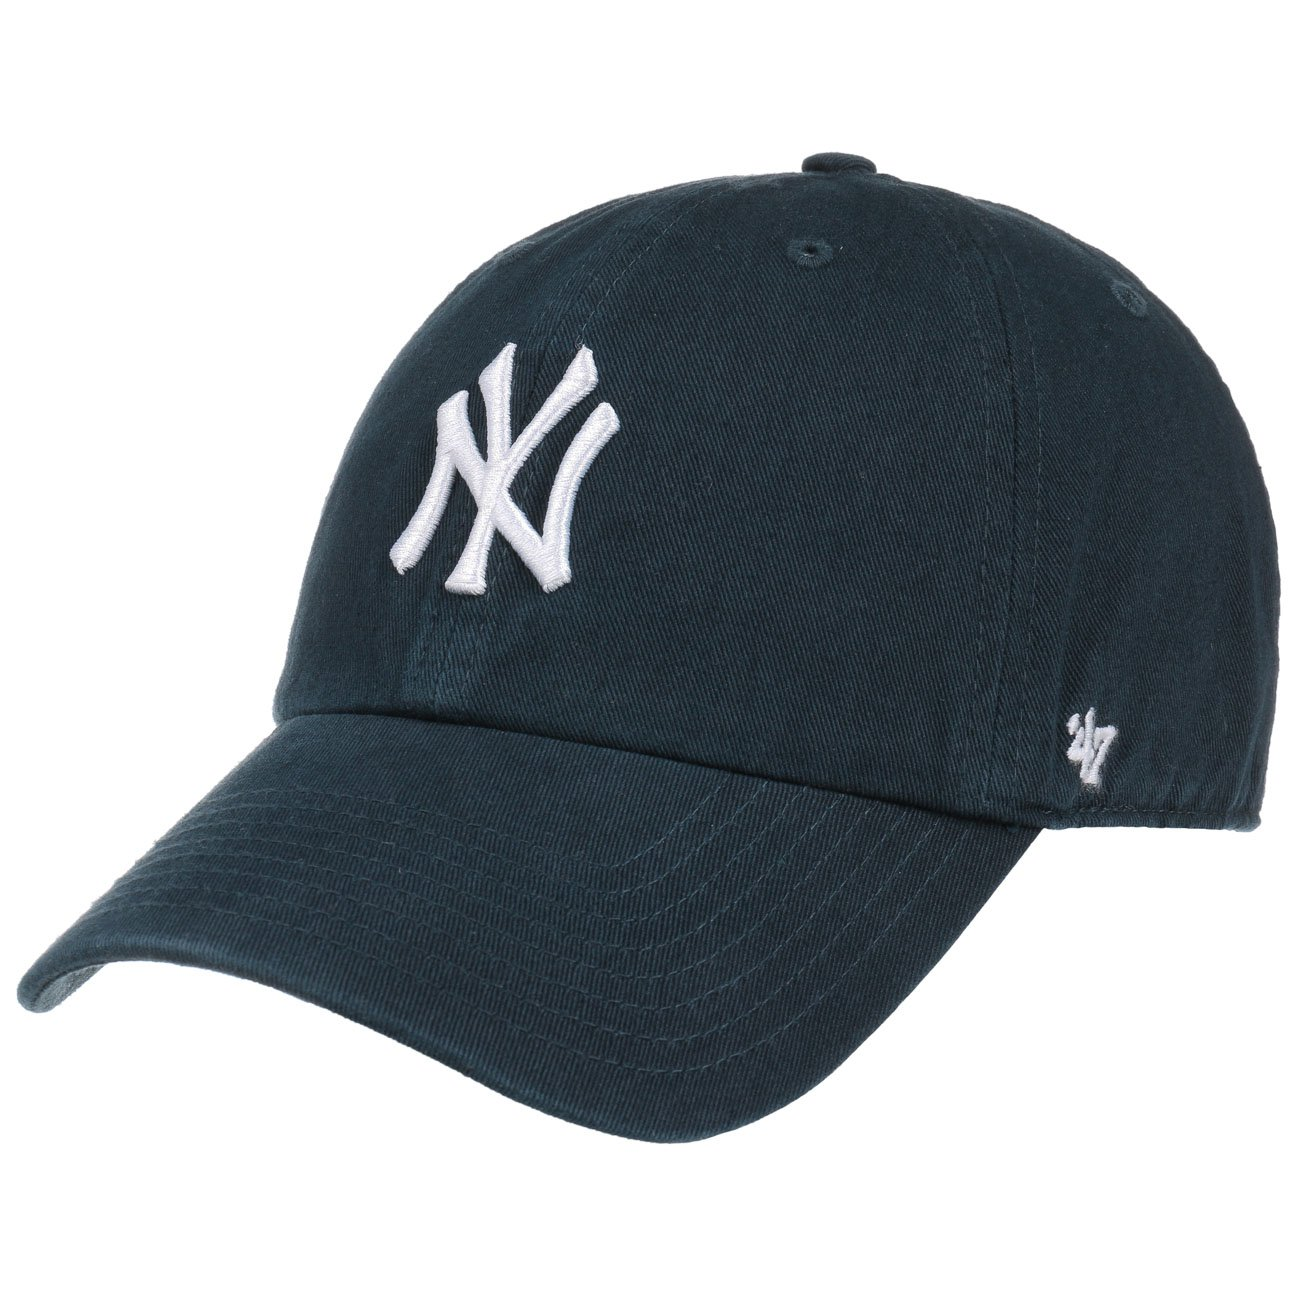 brand new 51cb1 329eb Amazon.com   47 MLB New York Yankees Brand Clean Up Adjustable Cap, One  Size, Black  Clothing